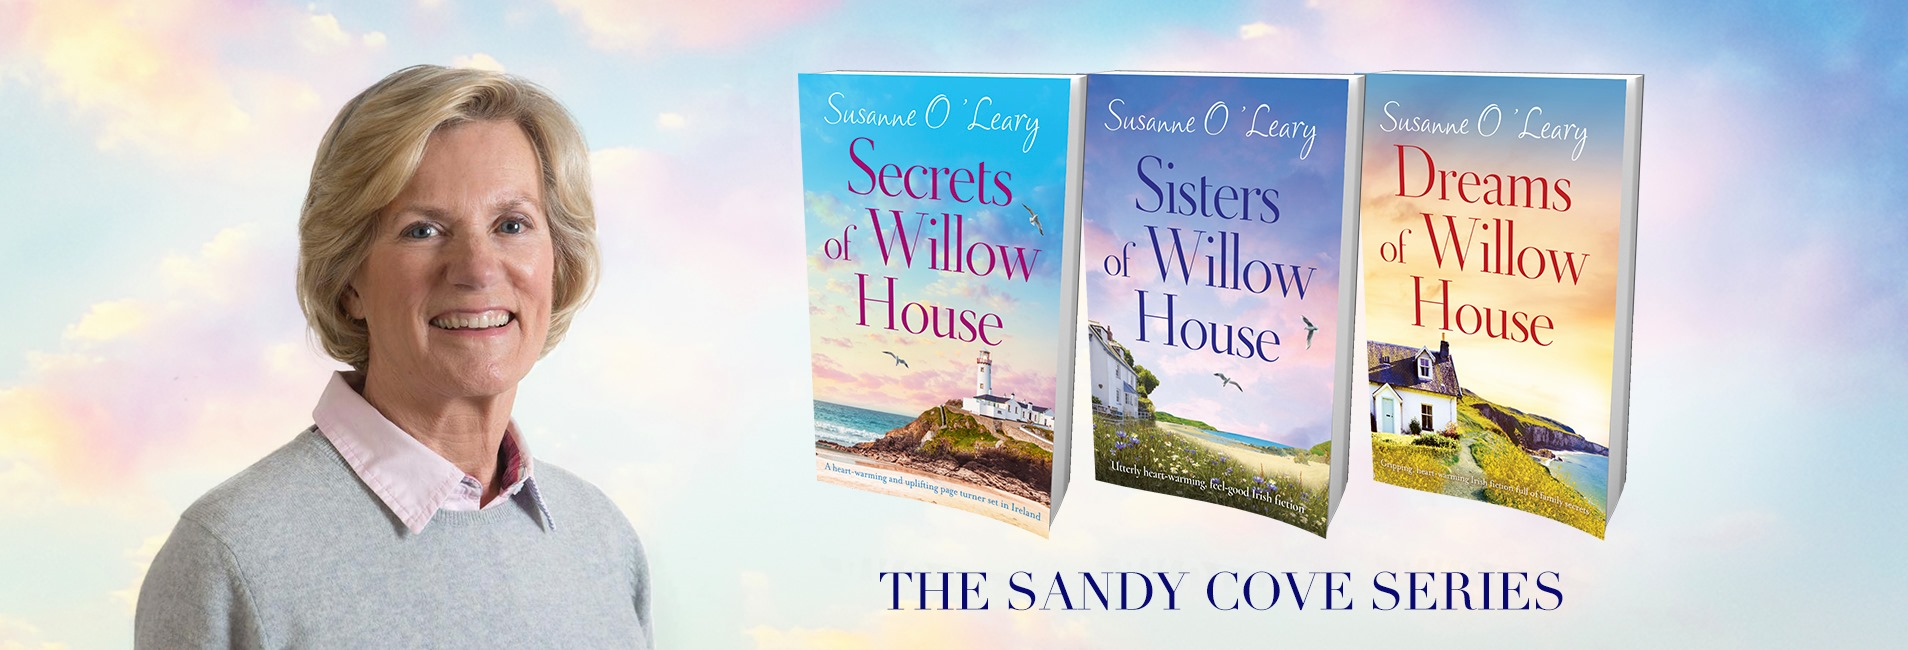 The Sandy Cove Series By Susanne O'Leary